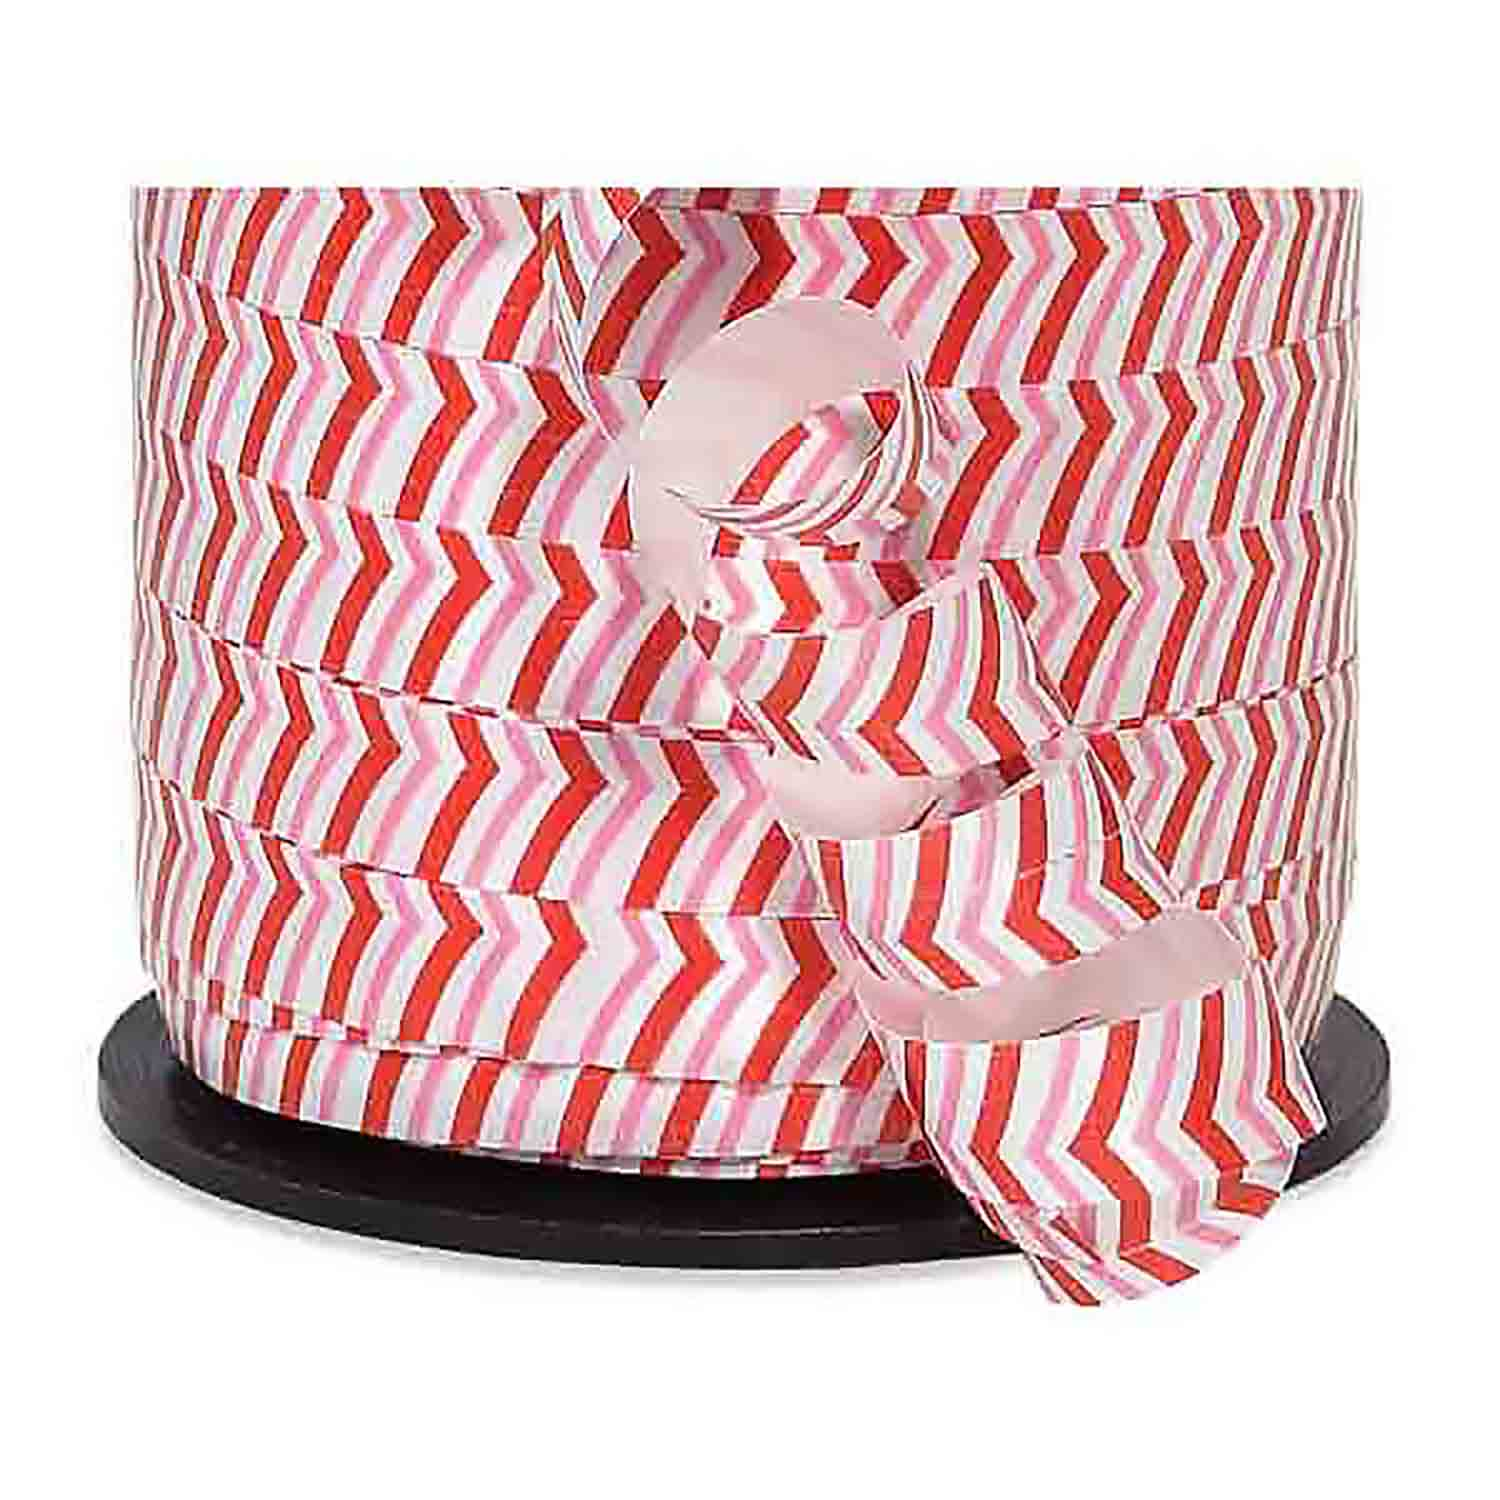 Curling Ribbon- Peppermint Stripe